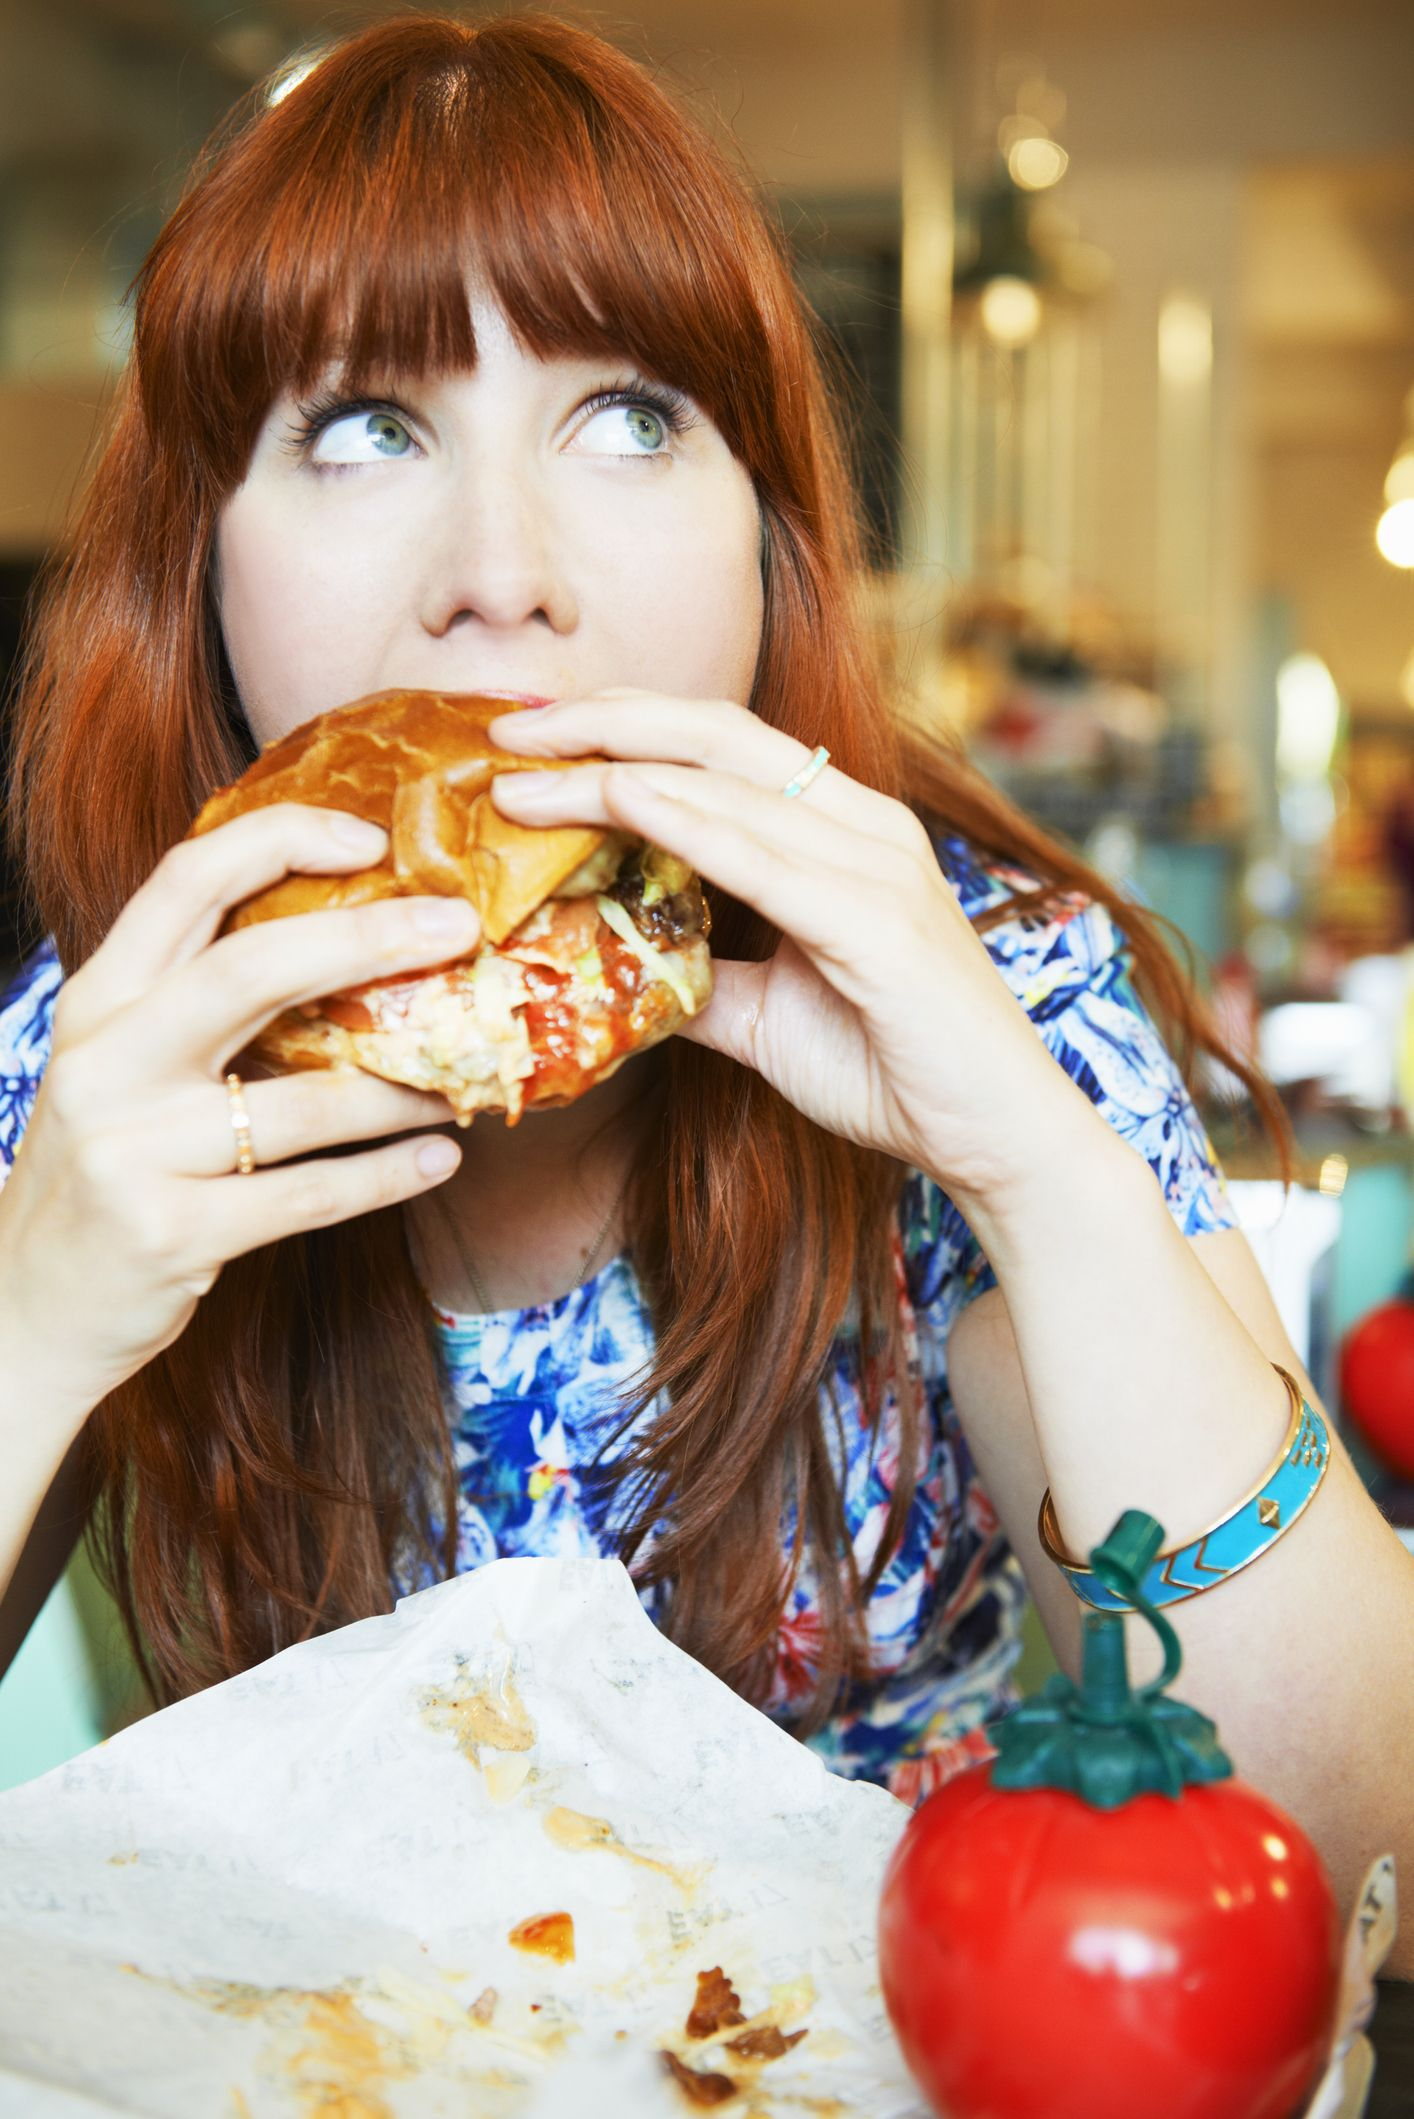 6 recovery tips for when you've overindulged on food and drink